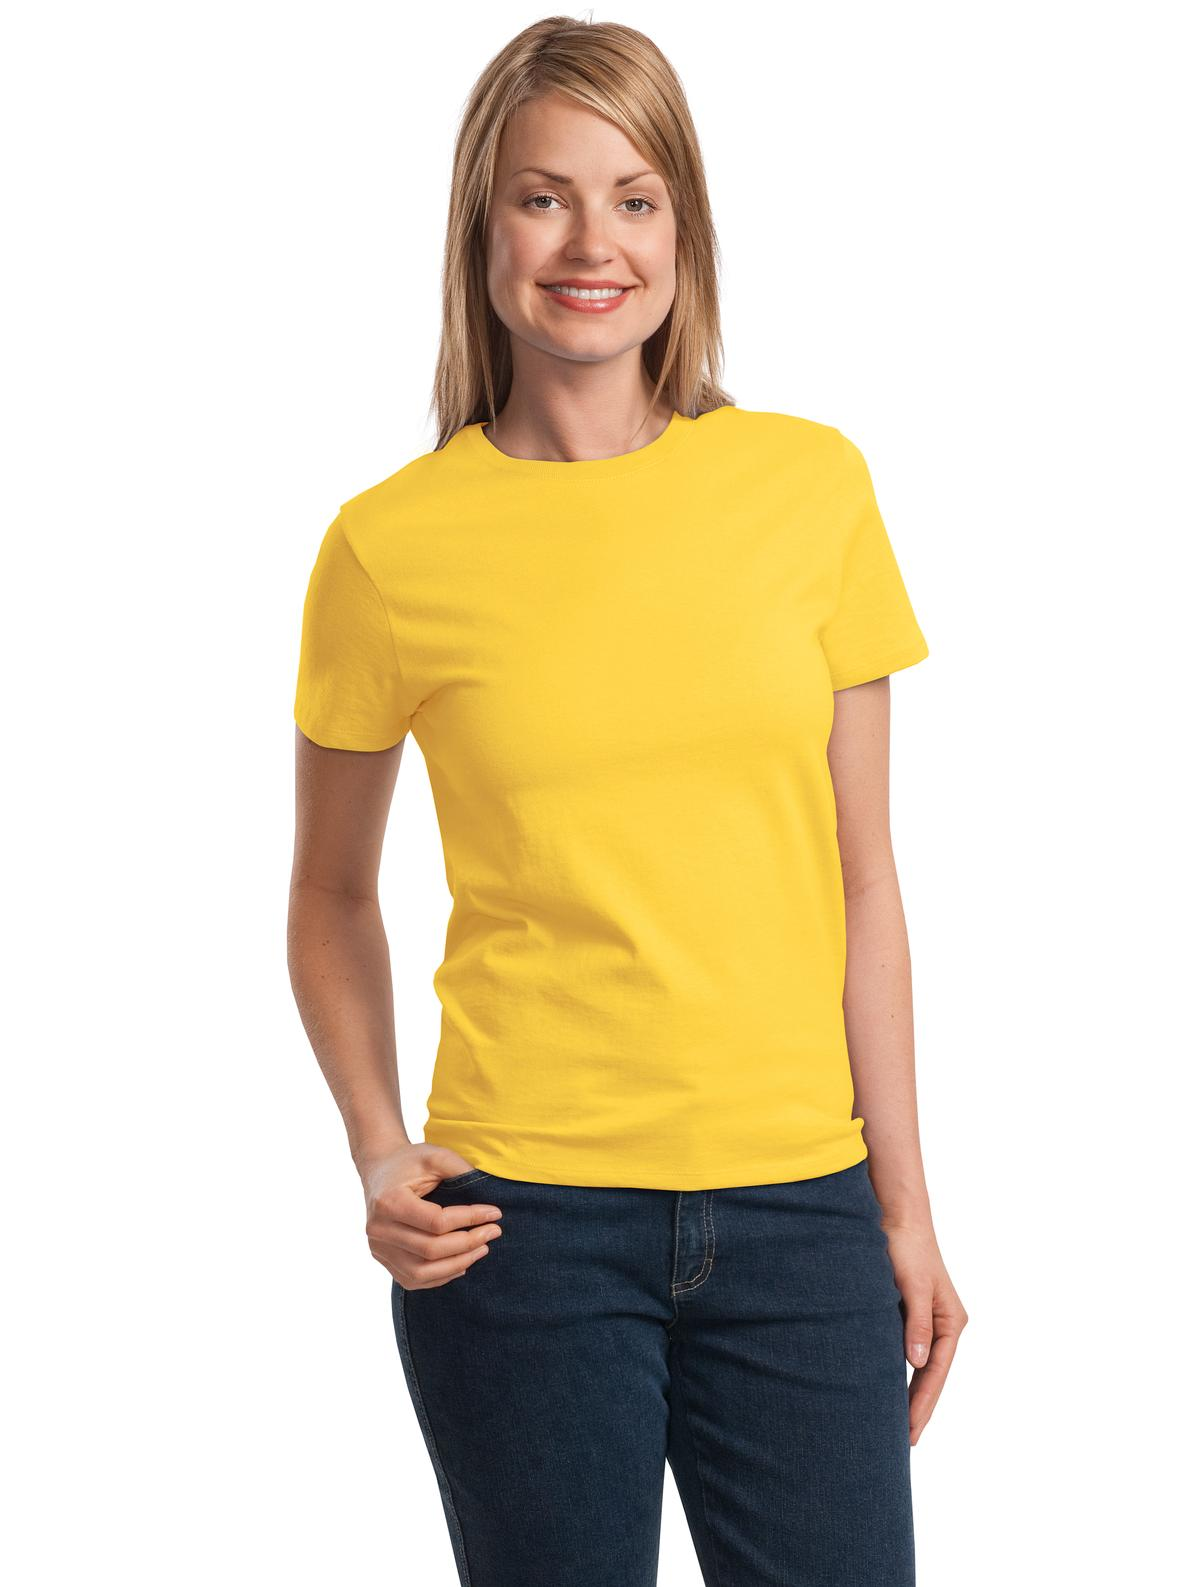 Women's T-shirts & Tees A basic essential in every closet, Belk's collection of women's t-shirts features the latest trends. These men's tees are available in a range of sleeve lengths, necklines, hems and styles so you are sure to find something you love.